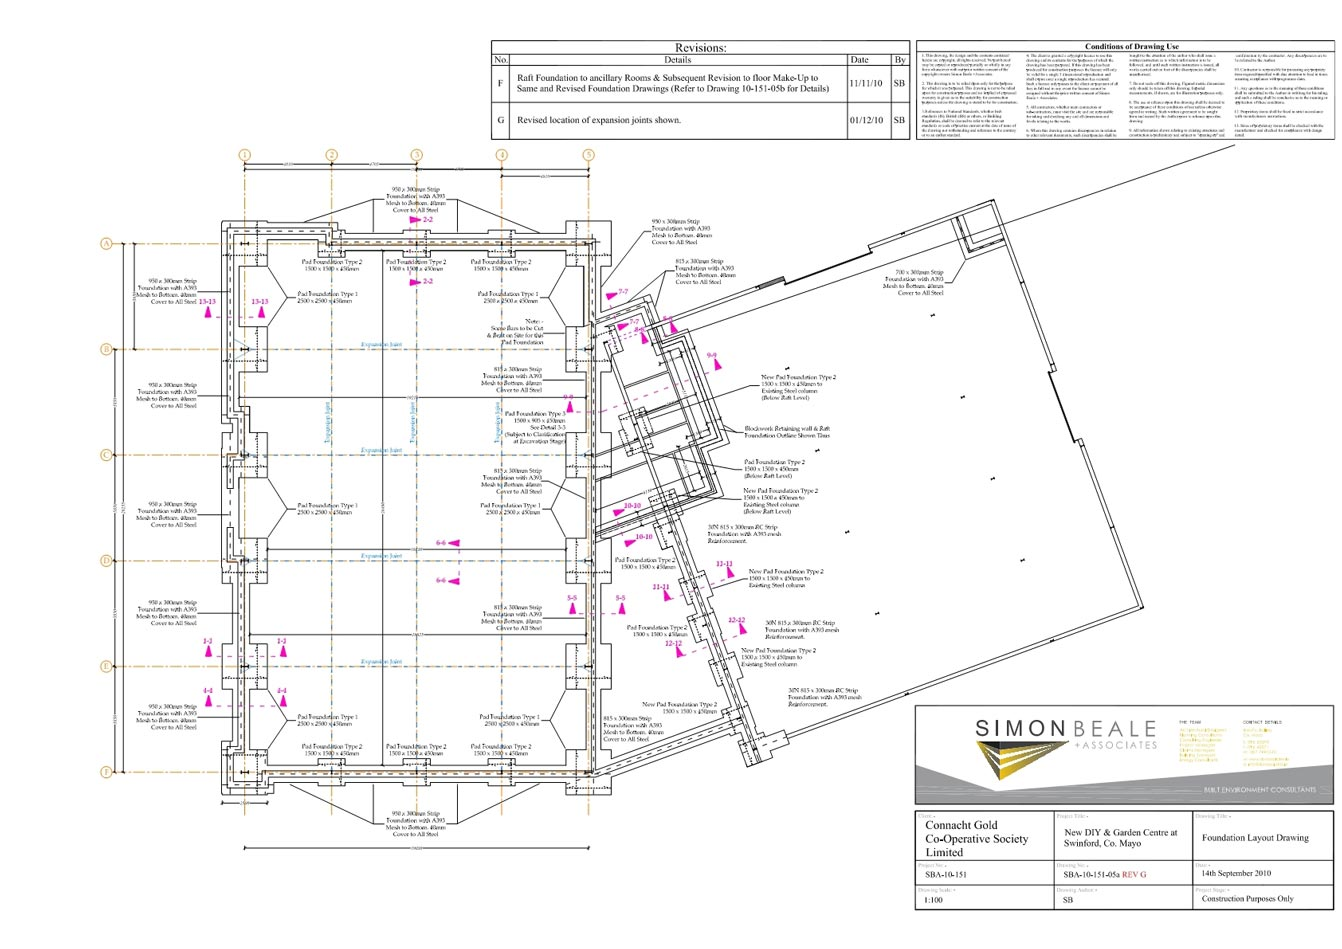 05a_foundation_layout_pagenumber